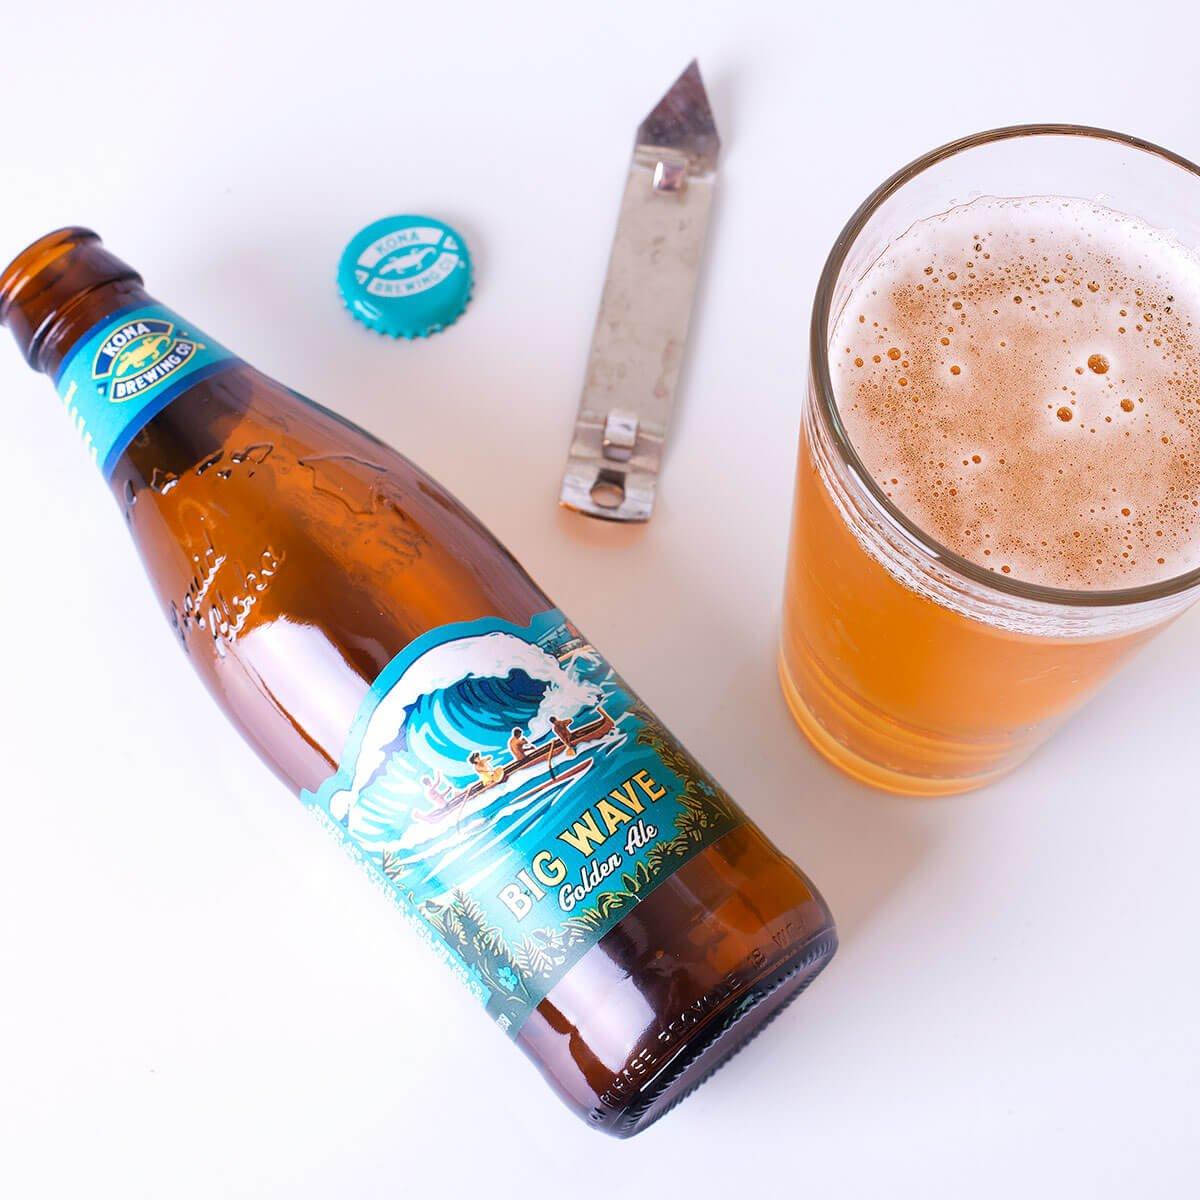 Big Wave Golden Ale is an American Blonde Ale by Kona Brewing Co. that refreshingingly blends light malt, mild hops, and a touch of honey.